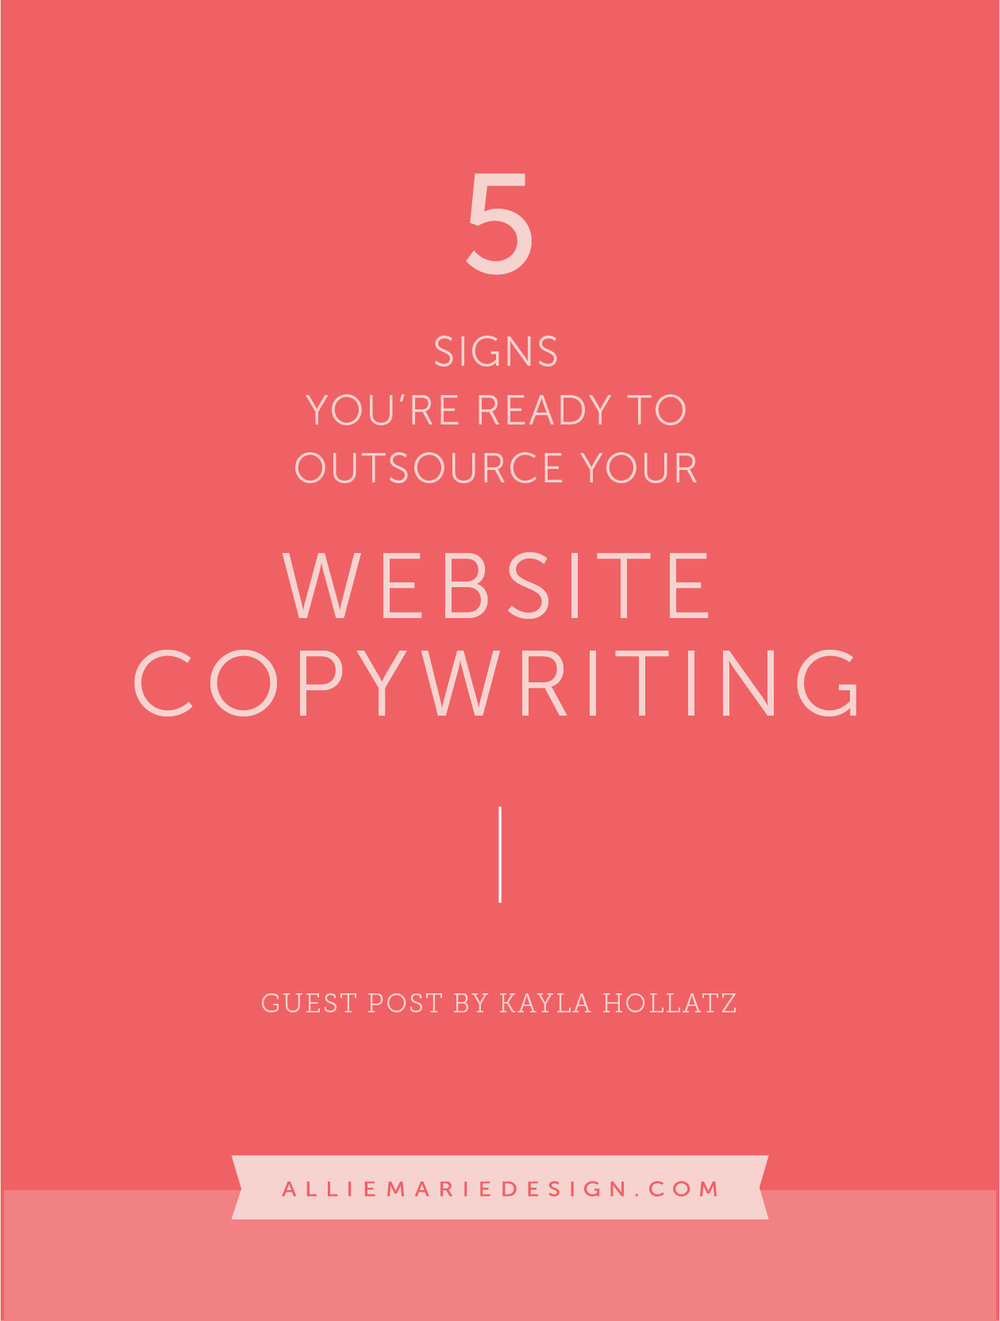 5 Signs You're Ready to Outsource Your Copywriting  |  Guest Post by Kayla Hollatz  |  AllieMarie Design Blog